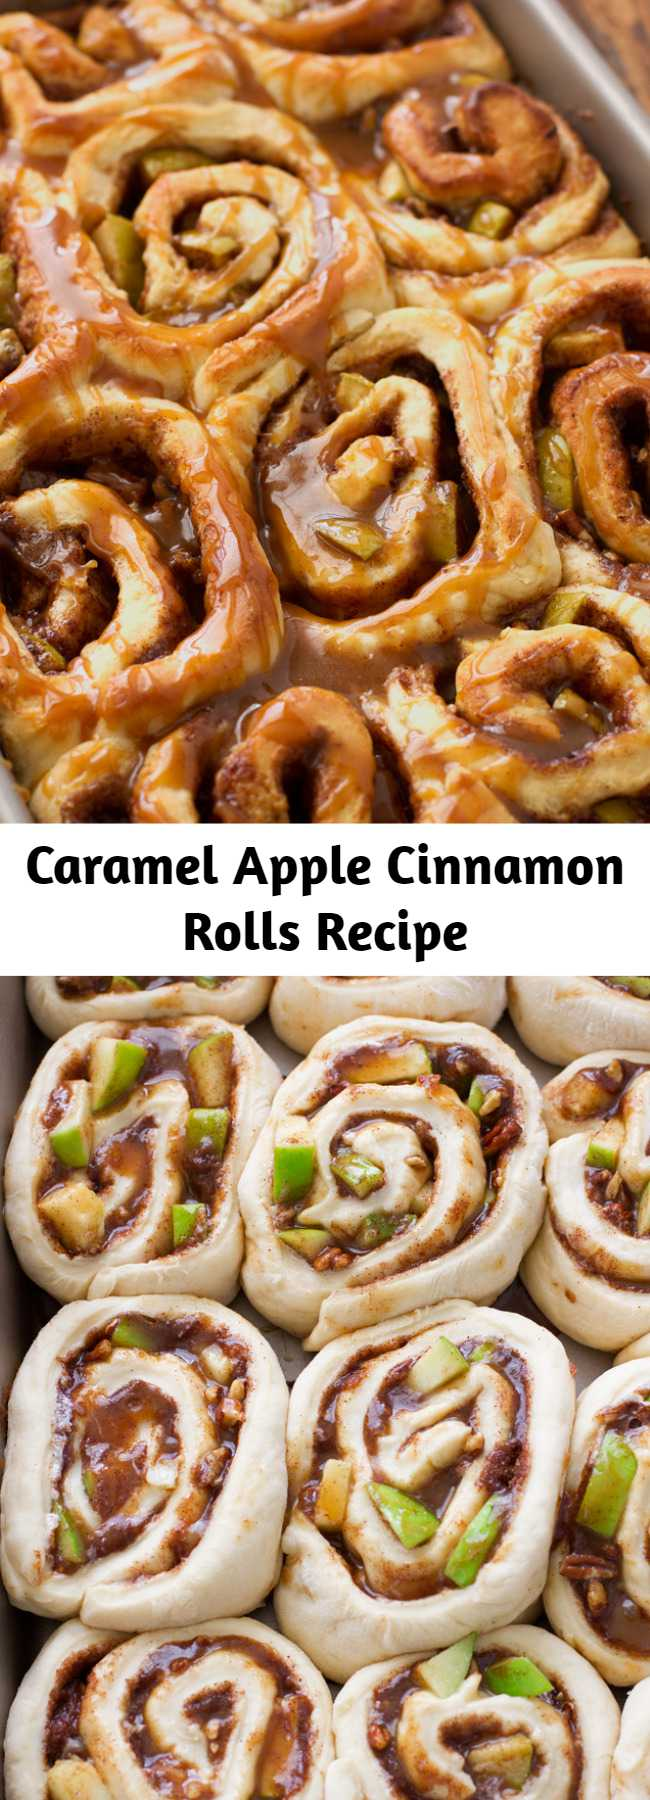 Caramel Apple Cinnamon Rolls Recipe - Caramel apple cinnamon rolls stuffed with cinnamon, brown sugar, caramel, granny-smith apples and drizzled with apple cider caramel sauce and pecans. My cinnamon rolls have the most wonderful, bakery-style buttery flavor! These apple cinnamon rolls are the perfect fall treat!